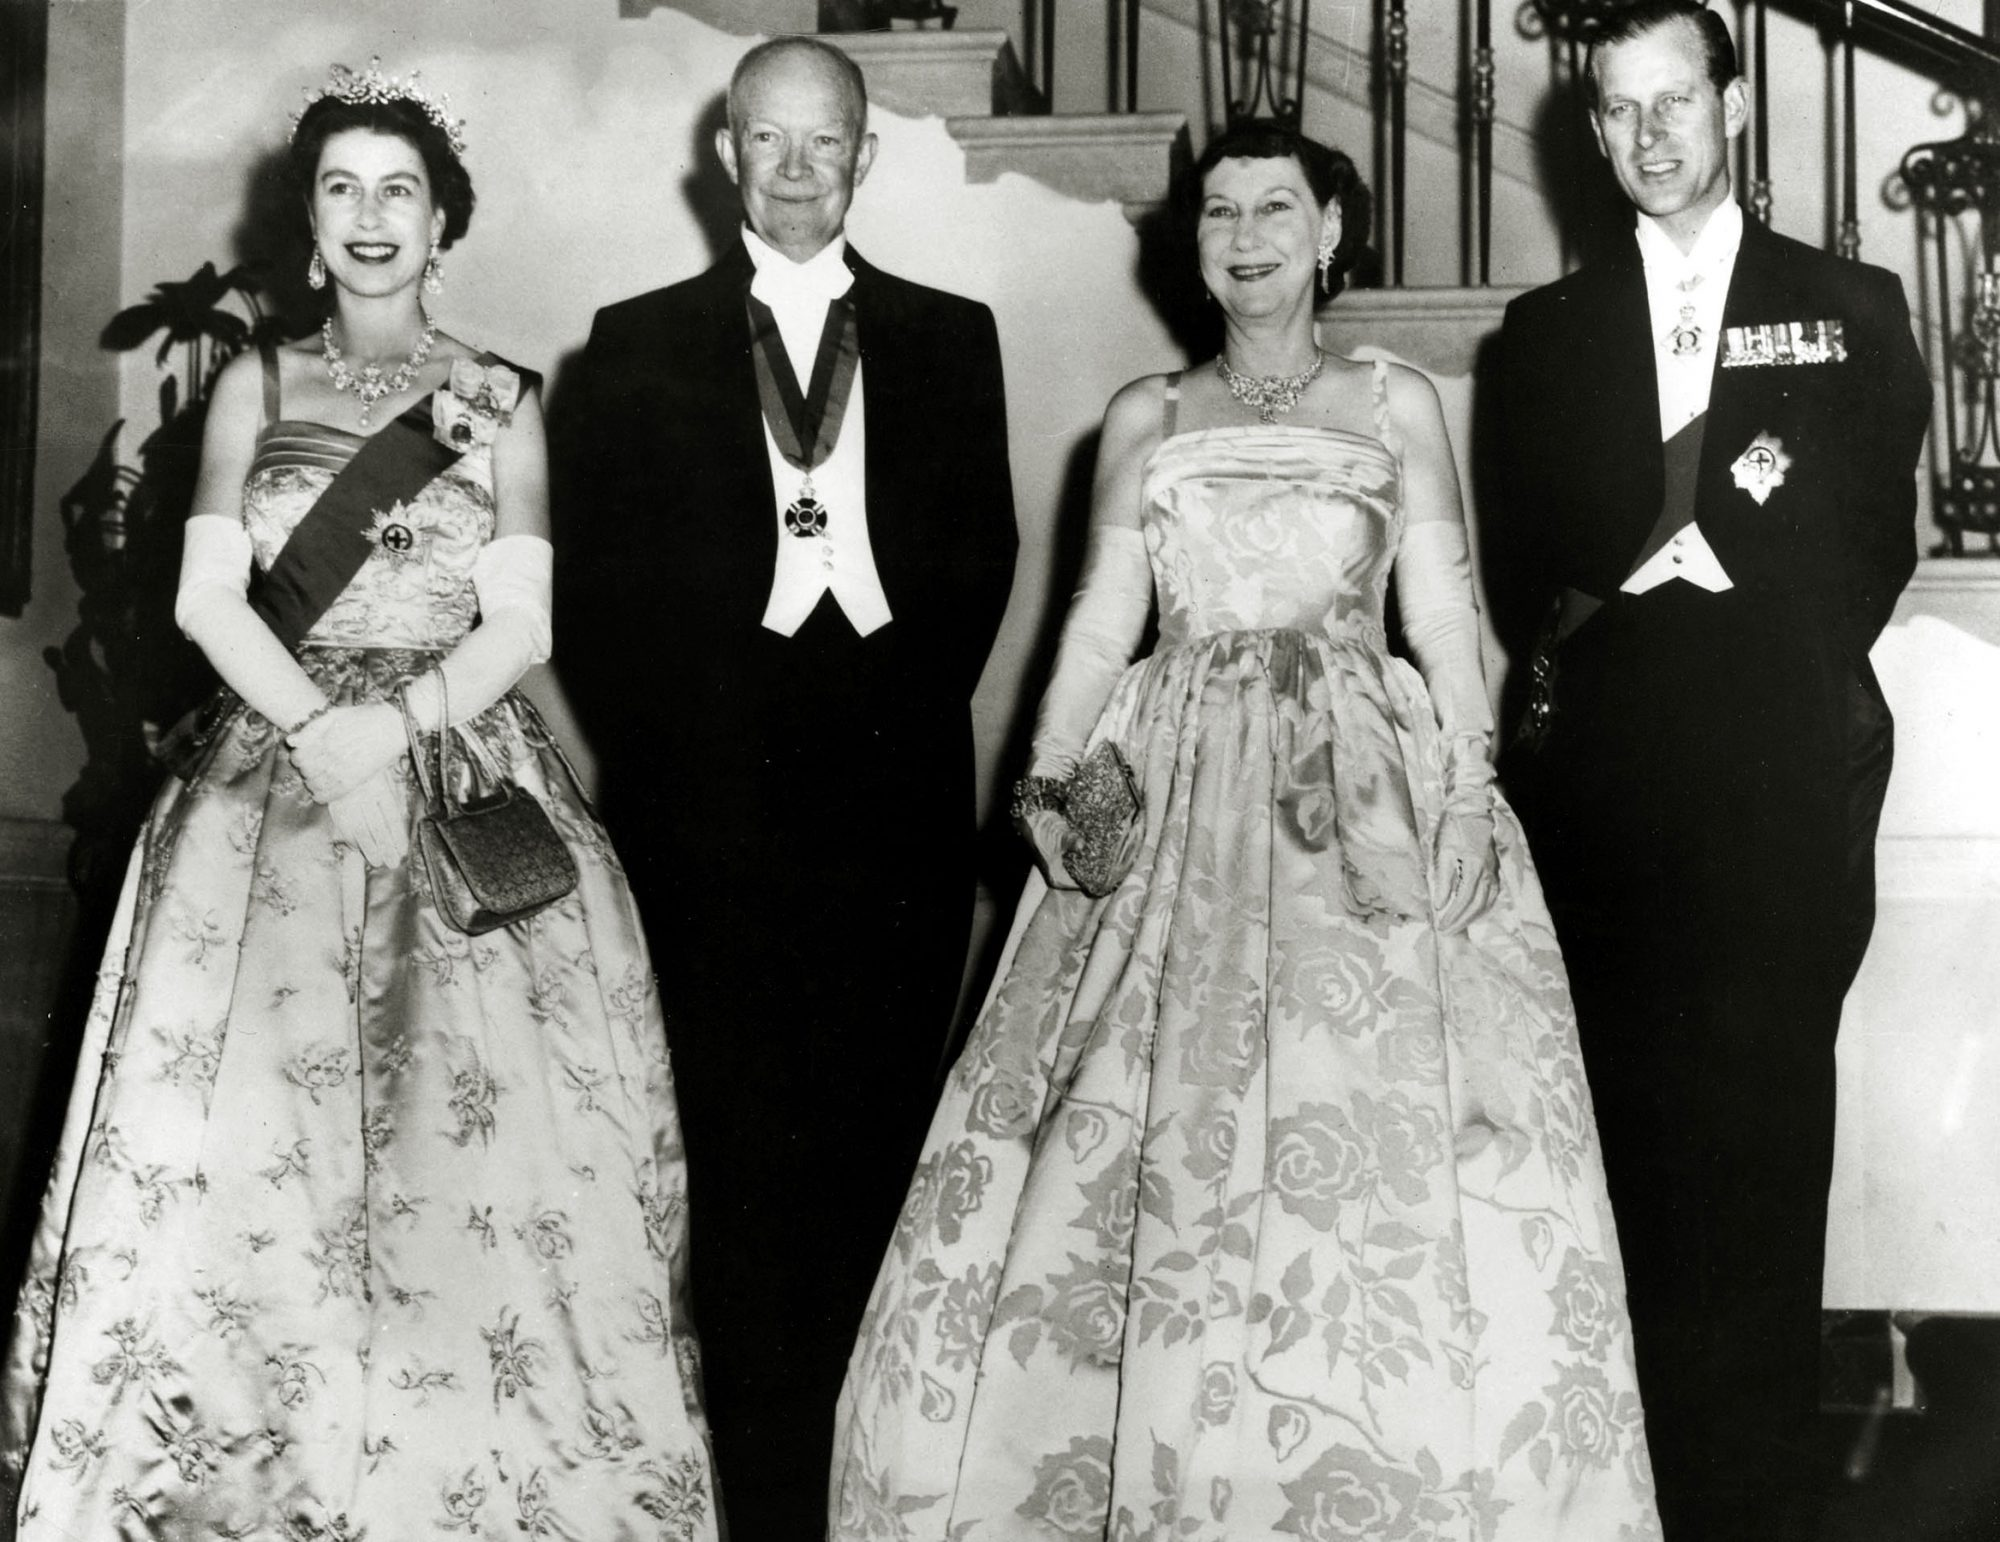 Politics, Personalities, USA, pic: 17th October 1957, President Dwight D, Eisenhower and Mamie Eisenhower, centre, with HM,Queen Elizabeth and Prince Philip before a state dinner in the White House, Washington D,C, Dwight D,Eisenhower (1890-1969) became t